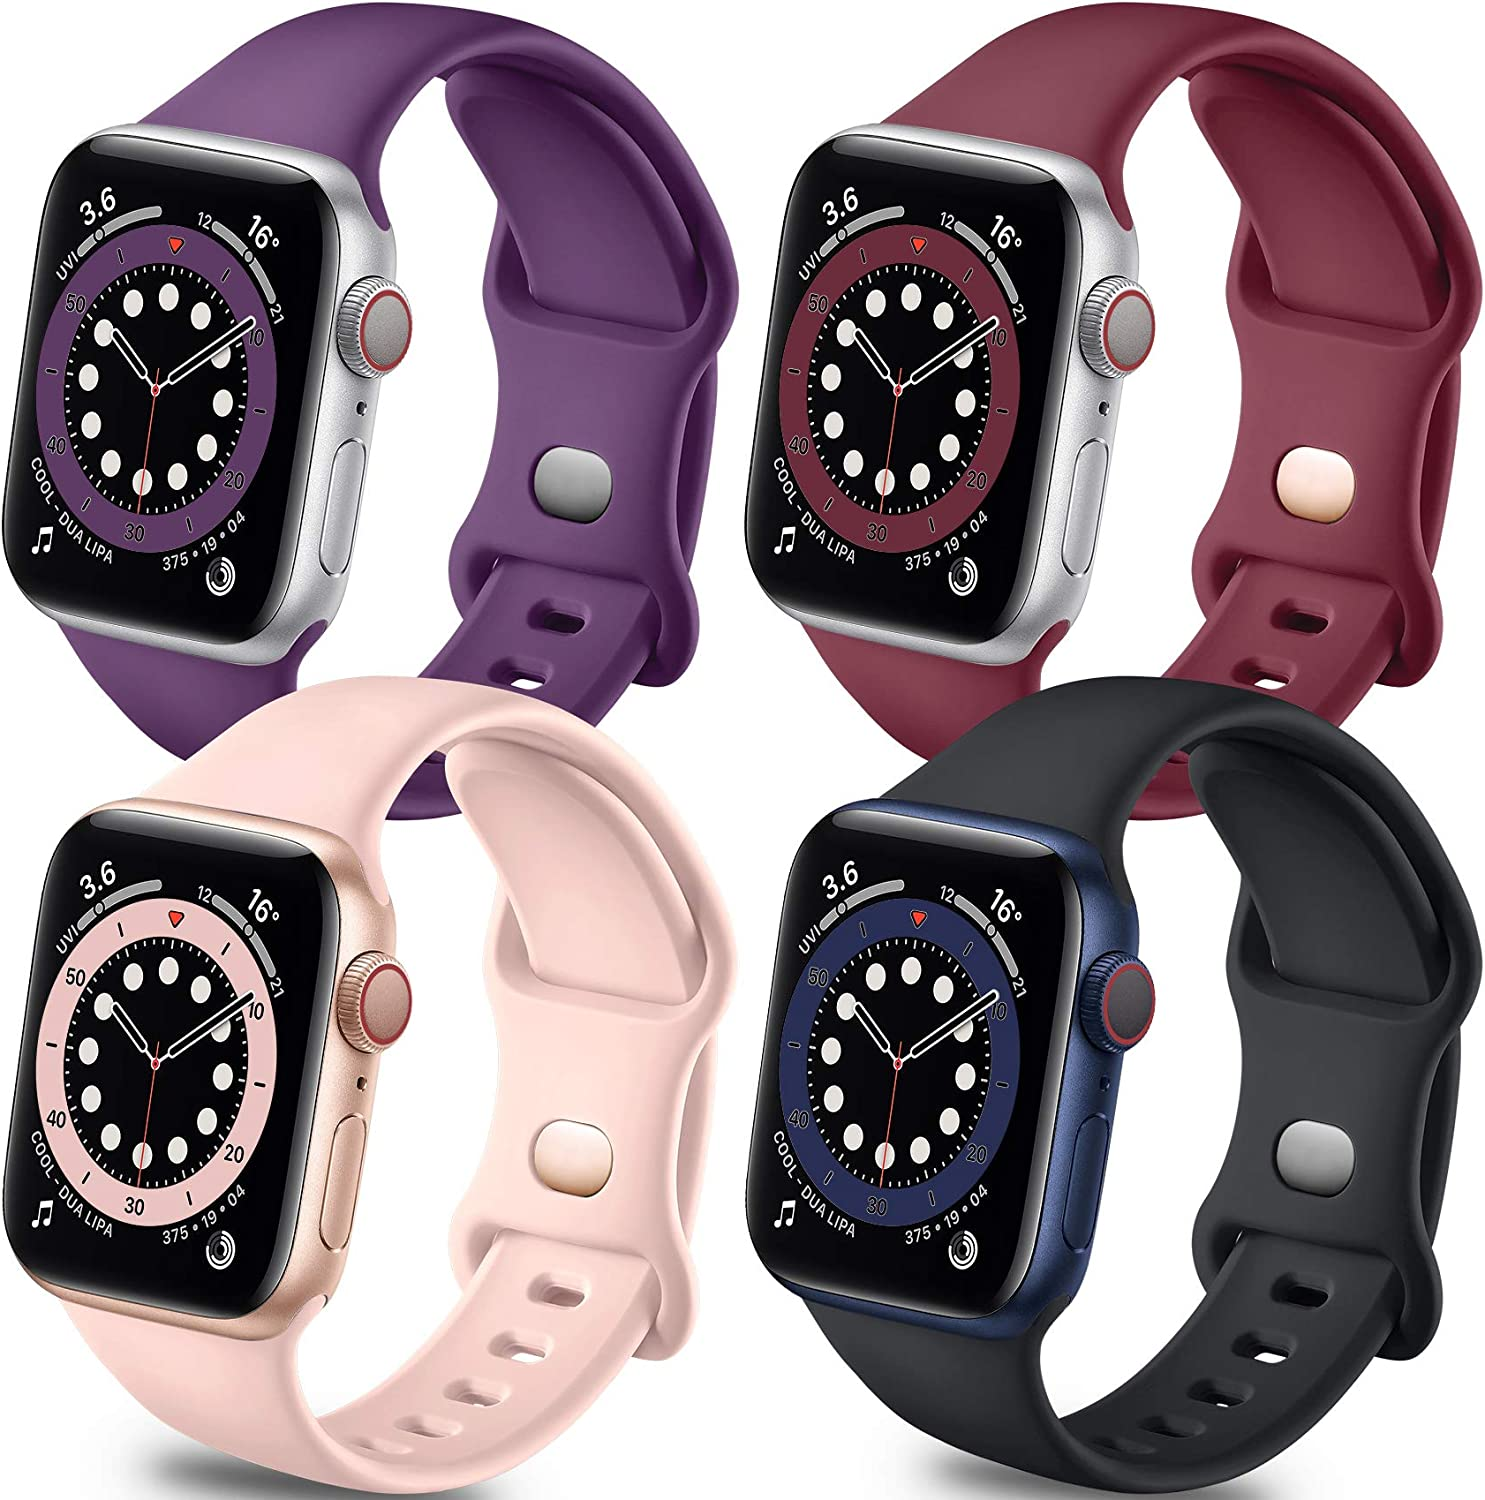 Getino Band Compatible with Apple Watch 40mm 38mm iWatch SE & Series 6 5 4 3 2 1, Stylish Breathable Soft Silicone Replacement Strap for Women Men, 4 Pack, Black, Wine Red, Pink Sand, Purple, M/L